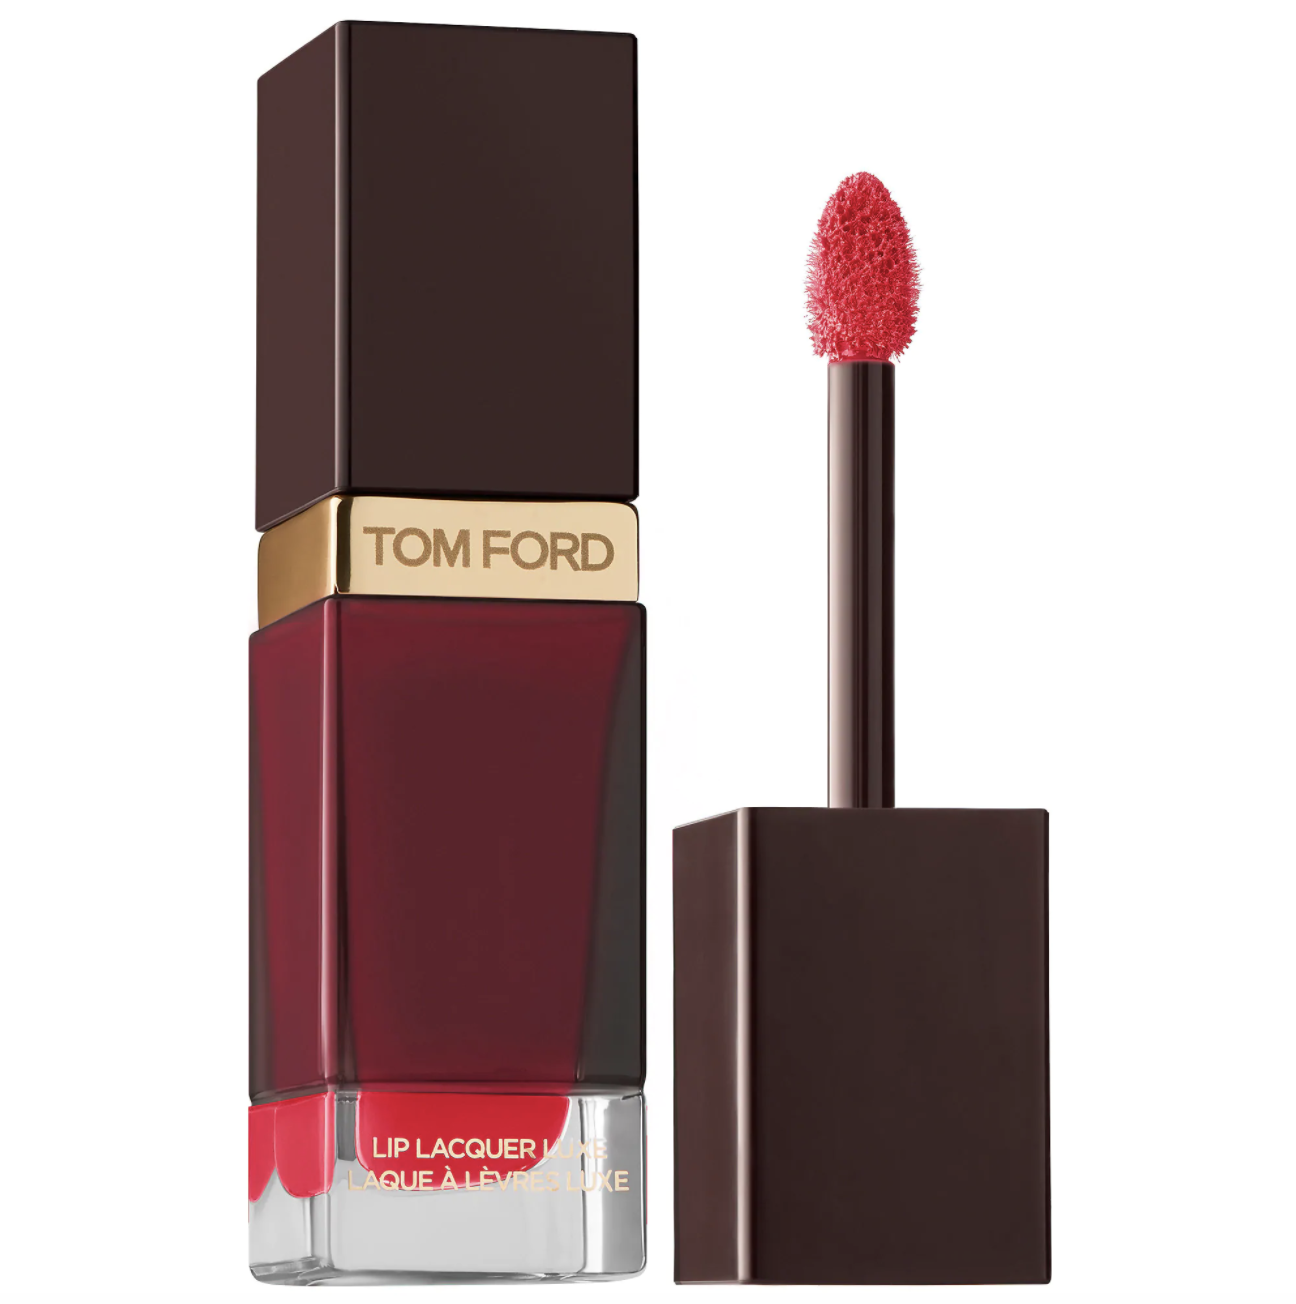 Lip Lacquer Luxe in Power Tom Ford sephora.com $57.00 SHOP NOW This brand new lipstick was recently unveiled backstage at New York Fashion Week and acts like a lip stain with major longevity. This hue is a true red that lasted all day: I applied it at 9 A.M. and the shade was still vibrant at 9 P.M.